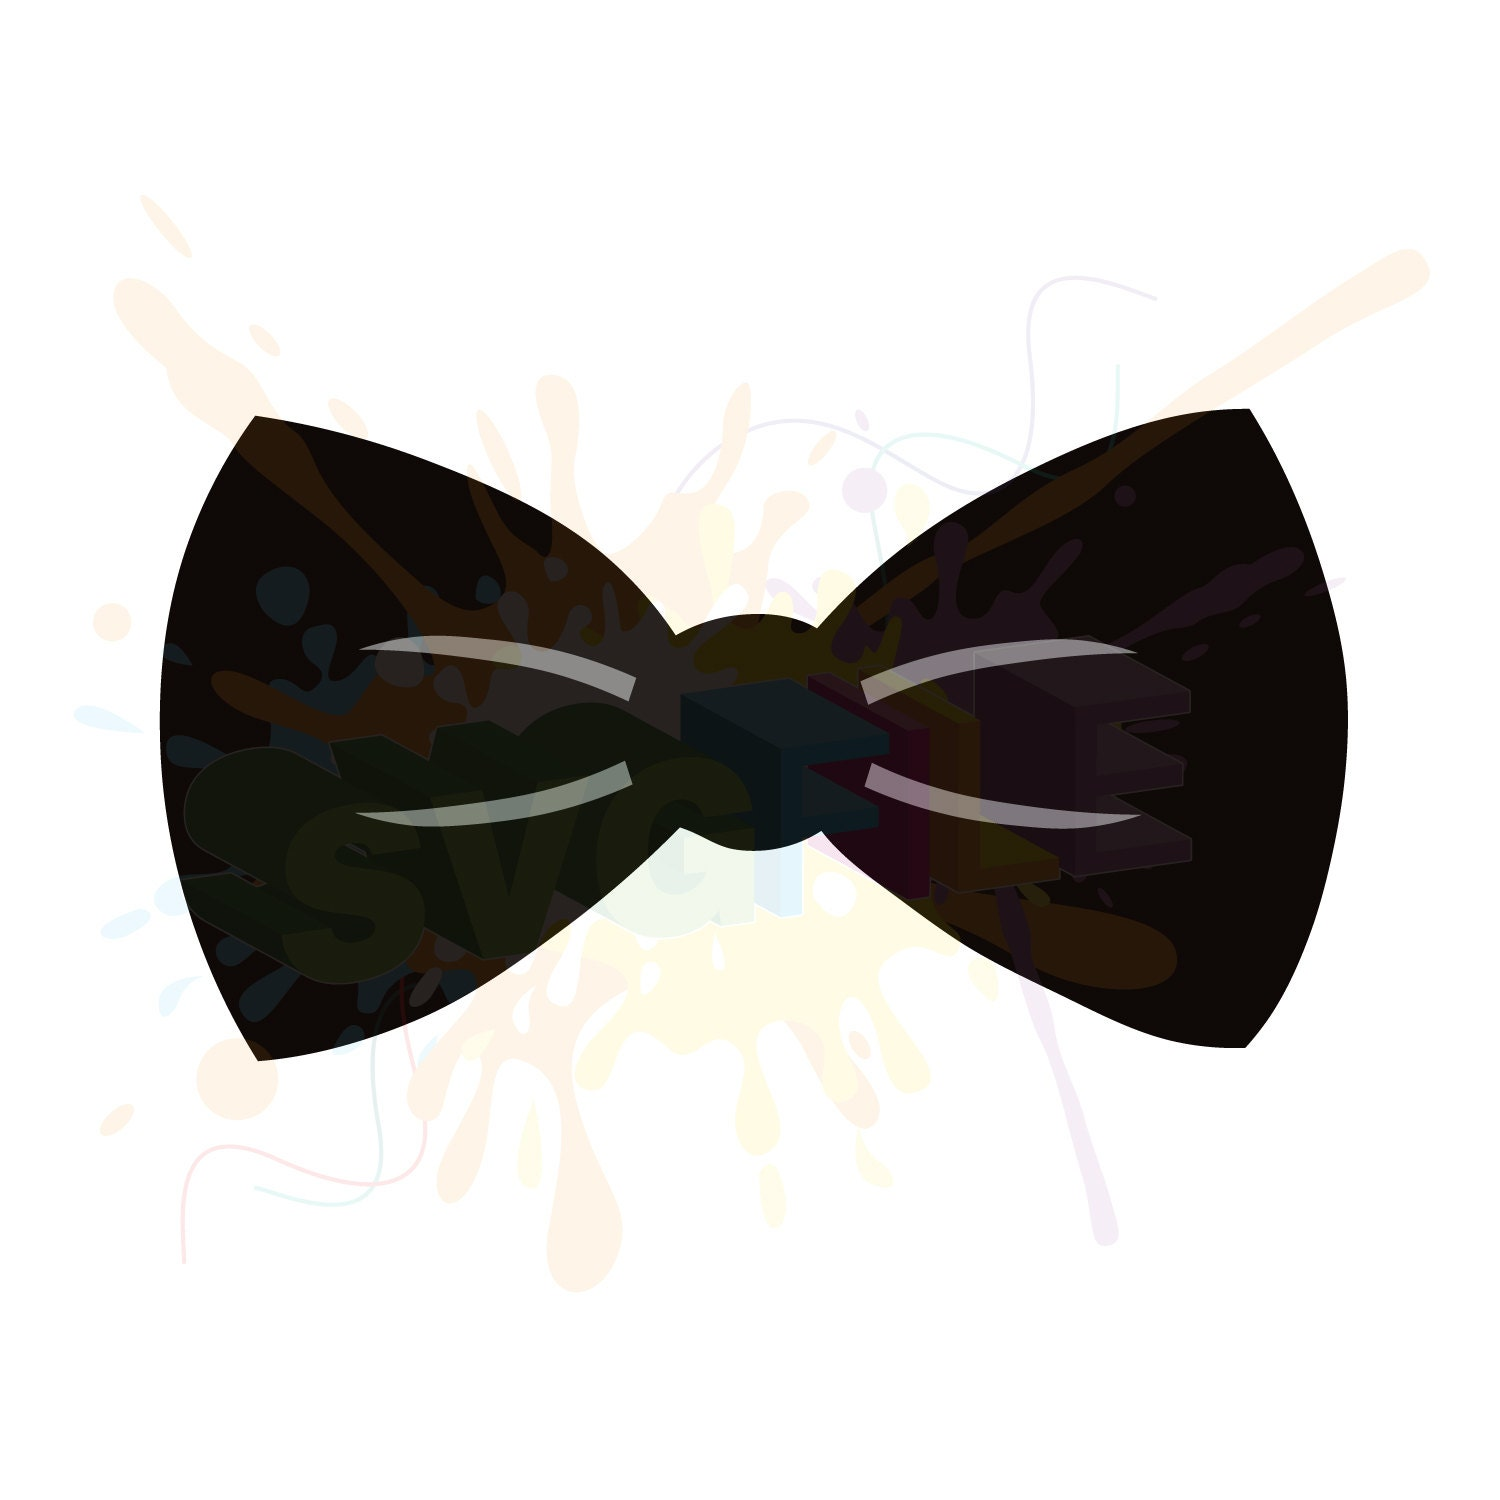 The bow tie is a descendant of the knotted cravat. It was born from the need for neckwear that was easier to wear than the cravat and that would last throughout a more active day. By the end of the 19th century, the butterfly and batwing bow tie were commonplace.